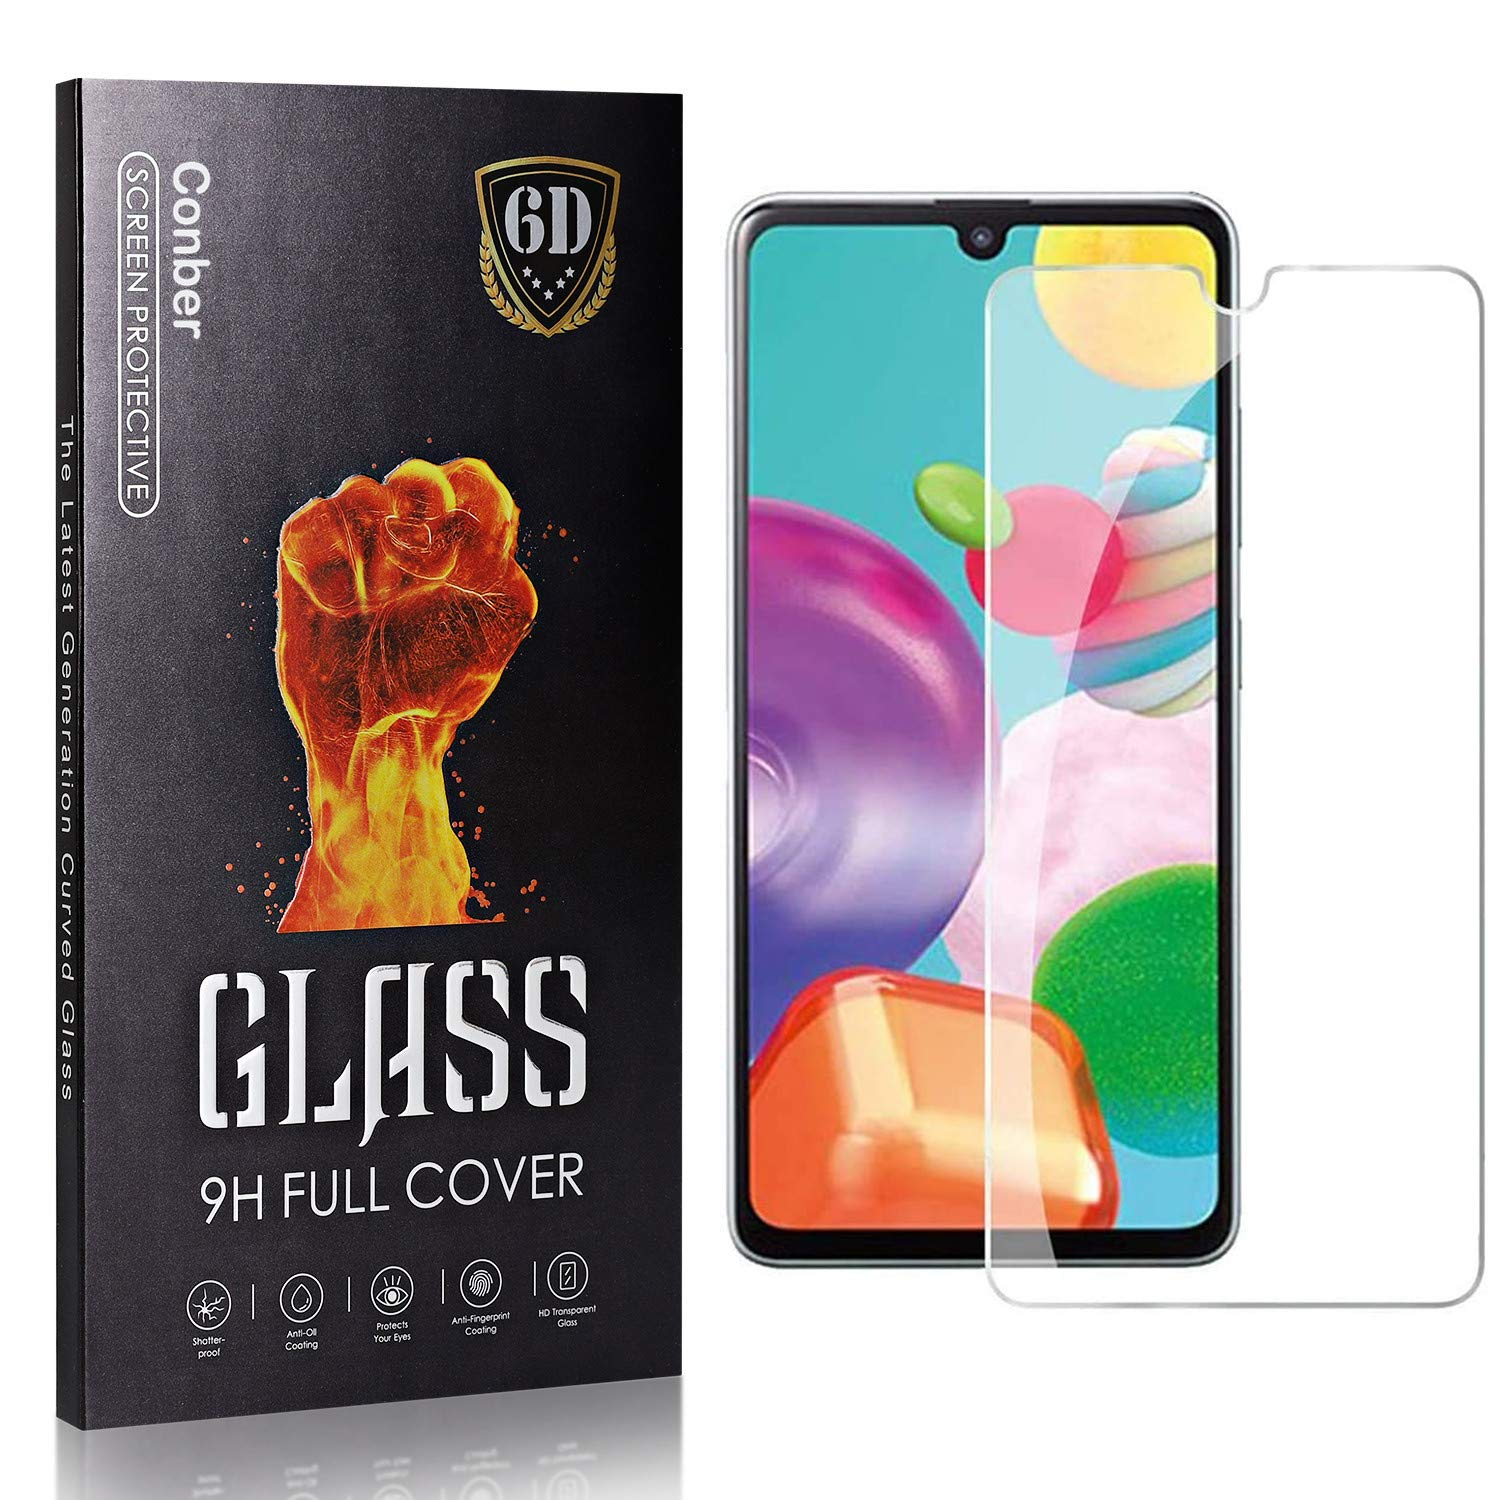 Conber 1 Limited price sale Pack Screen Protector Tempere for Galaxy Samsung discount A41